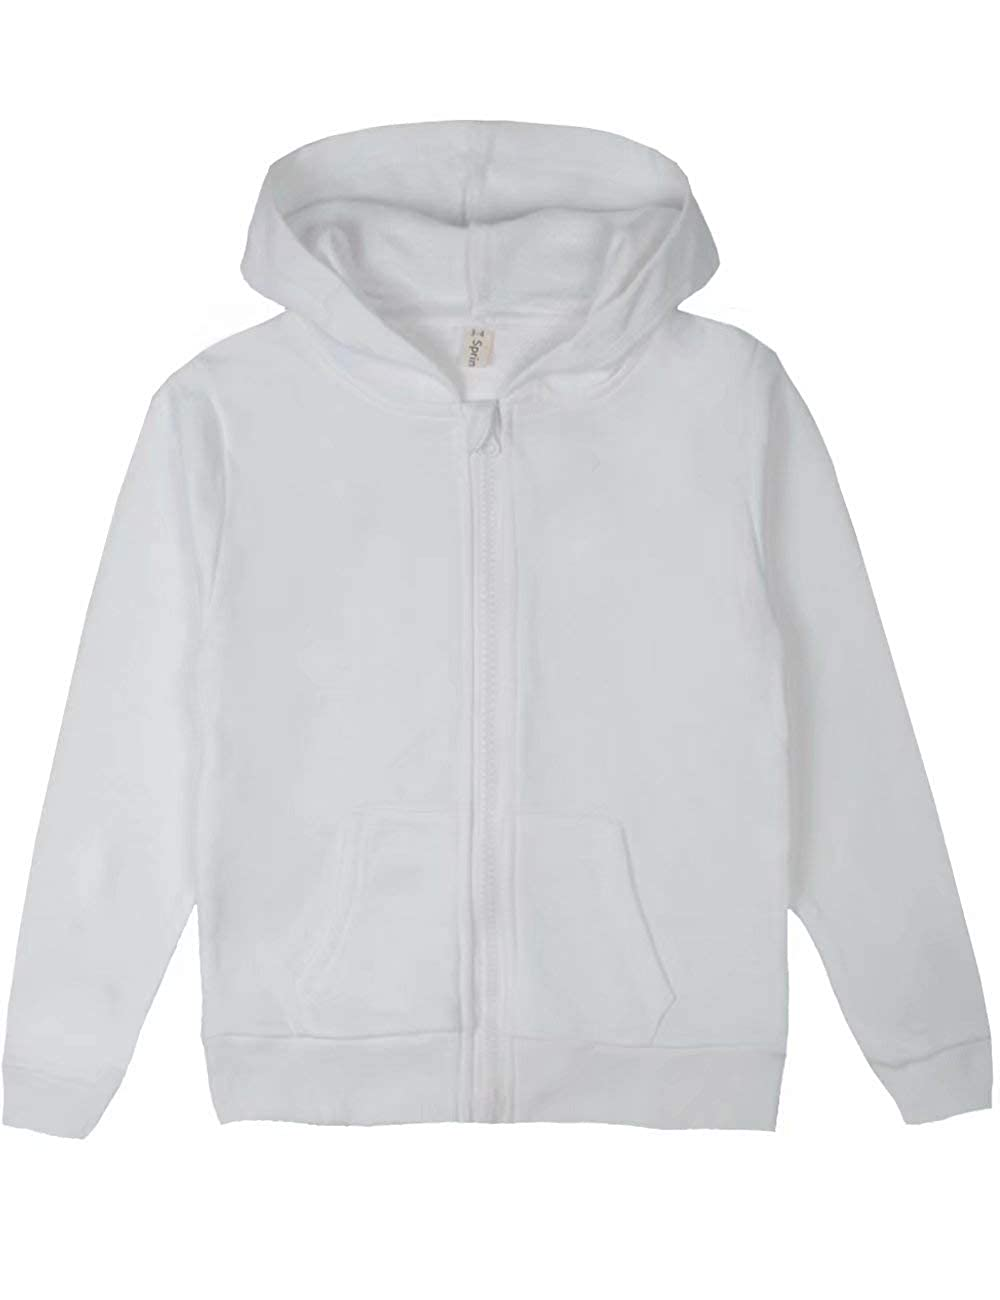 Spring& Gege Youth Classic Full-Zip Plain Hoodies for Children (3-12 Years)